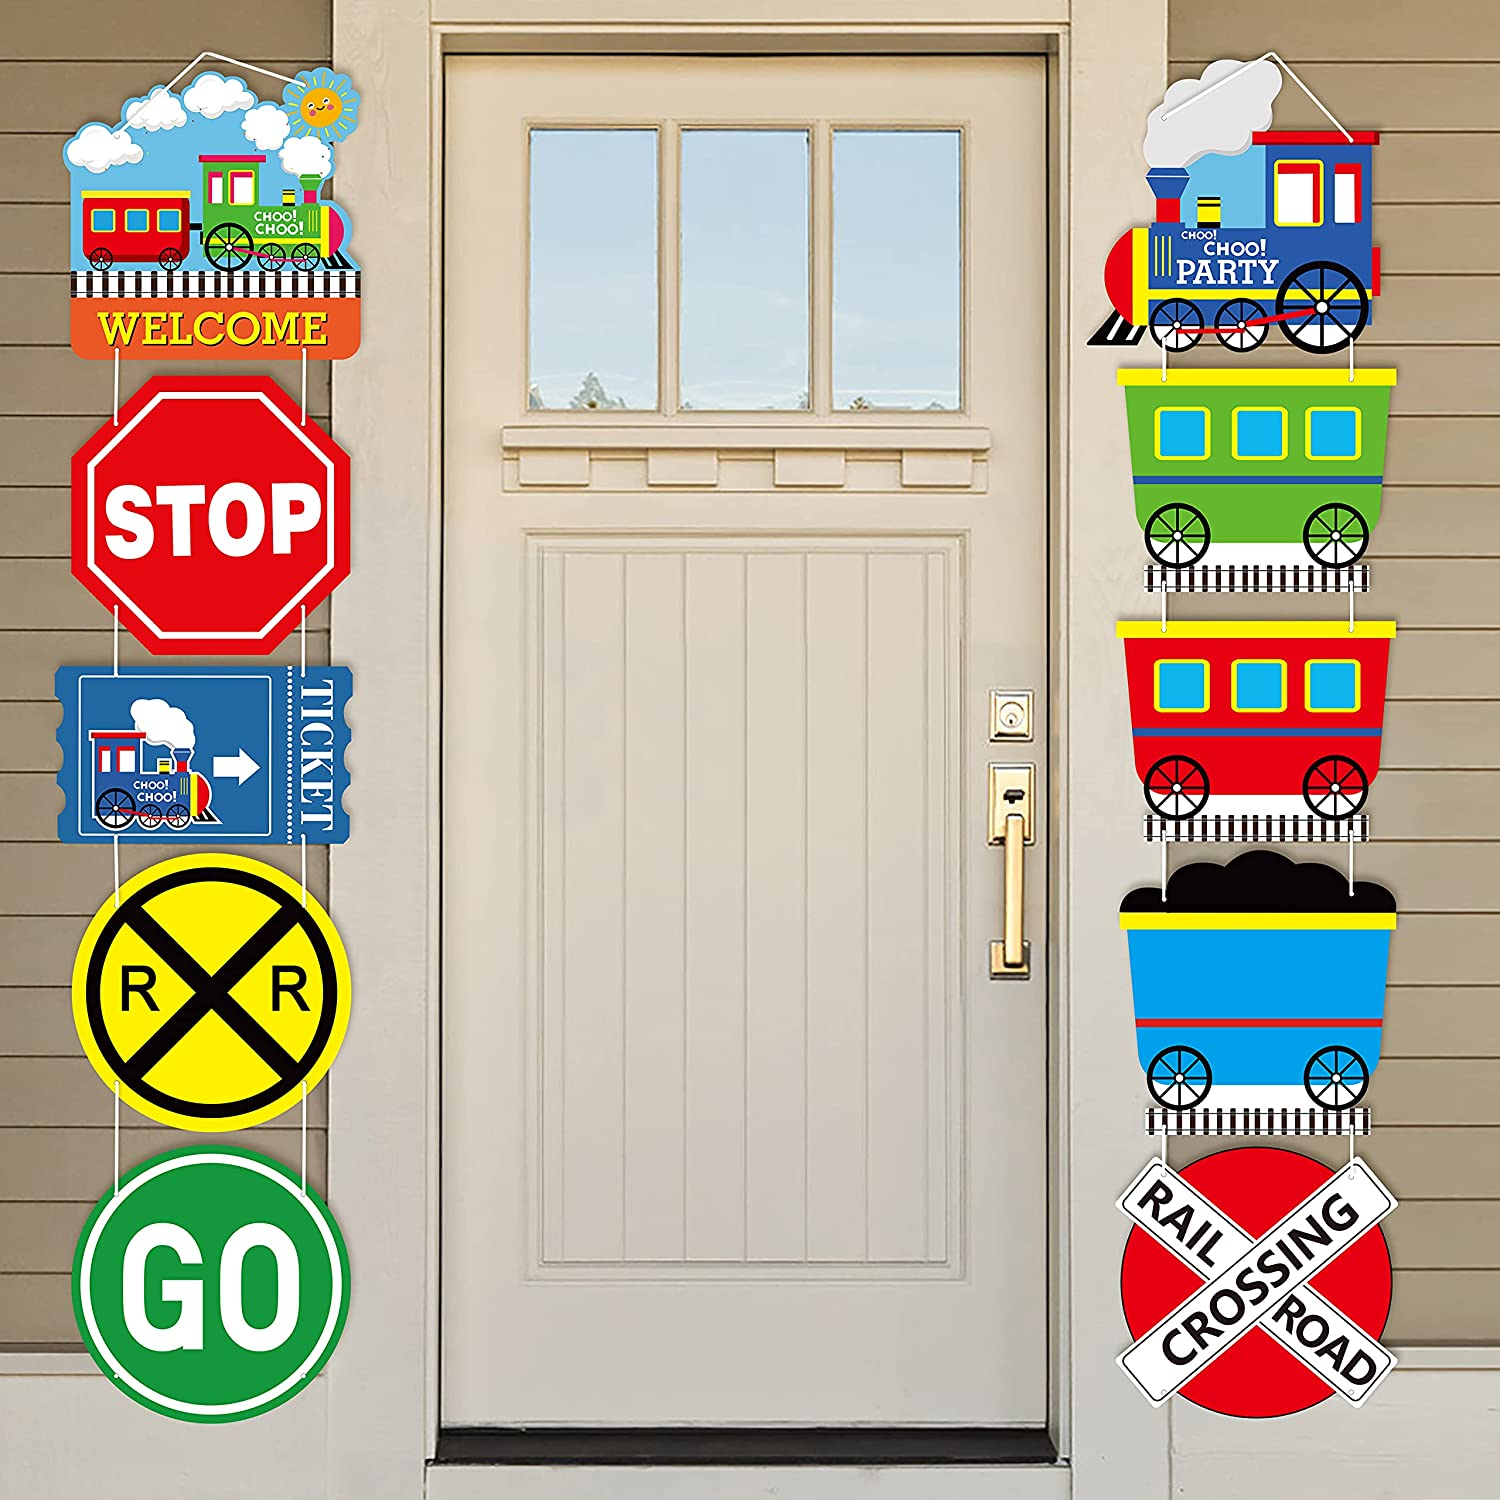 OSNIE 10Pcs Railroad Train Crossing Theme Choo Choo 2nd Birthday Party Decoration Supplies Railway Steam Train Traffic Sign Cardboard Cutouts Door Sign Banner Porch Sign Classroom Outdoor Indoor Wall Decor for Kids Boys